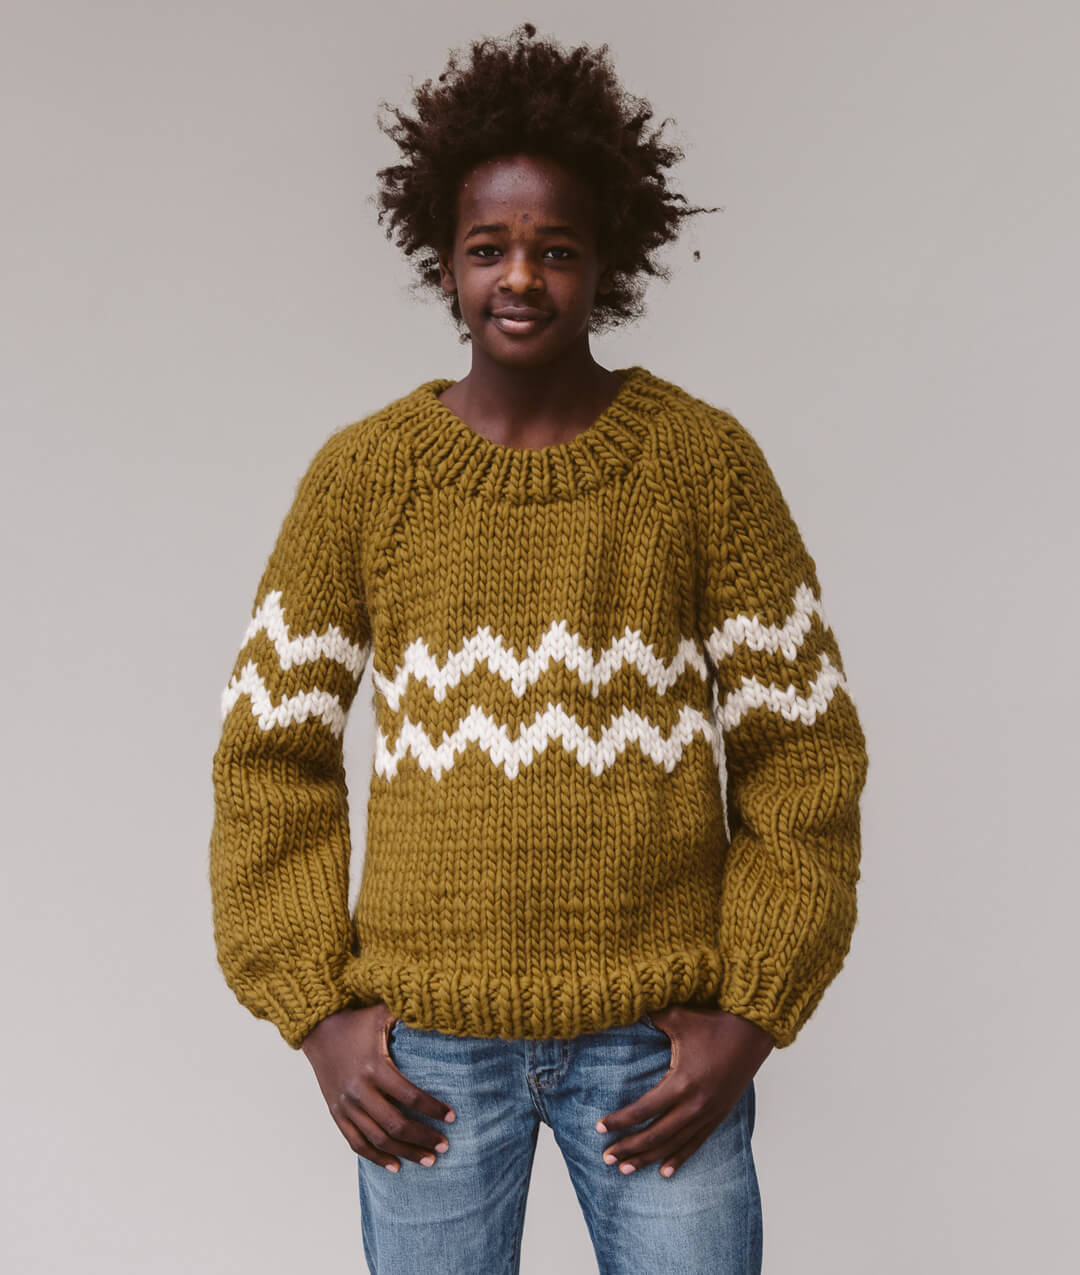 Sweaters and Tops - Wool - MERRY XMAS JUMPER - FOR HIM - 1